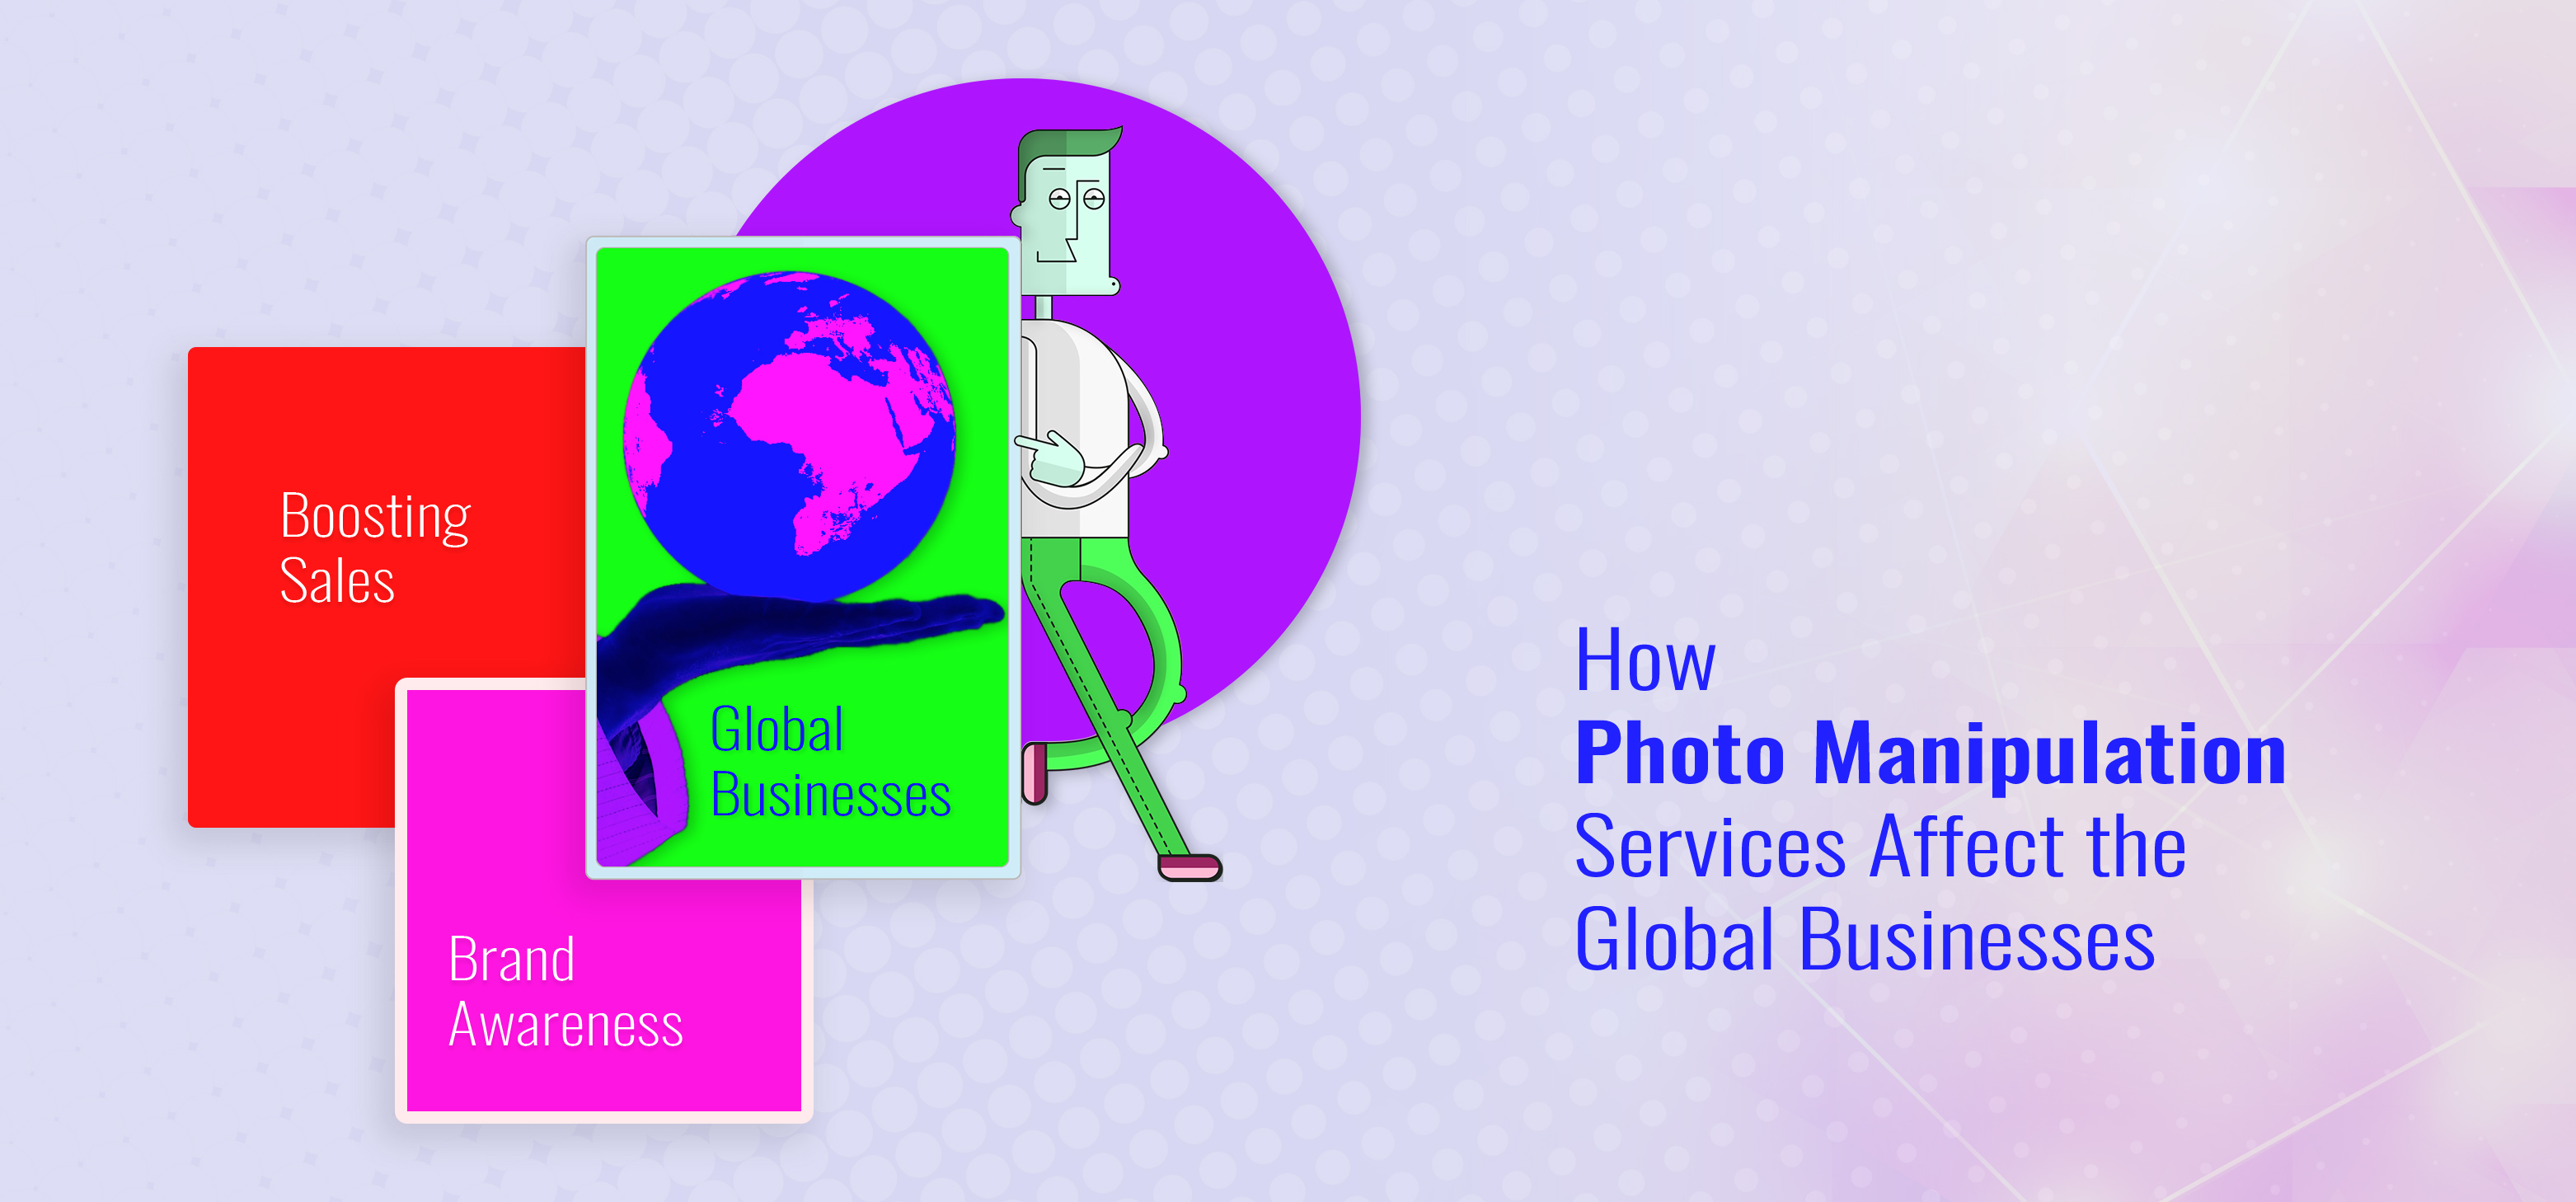 How Photo Manipulation Services Affect the Global Businesses